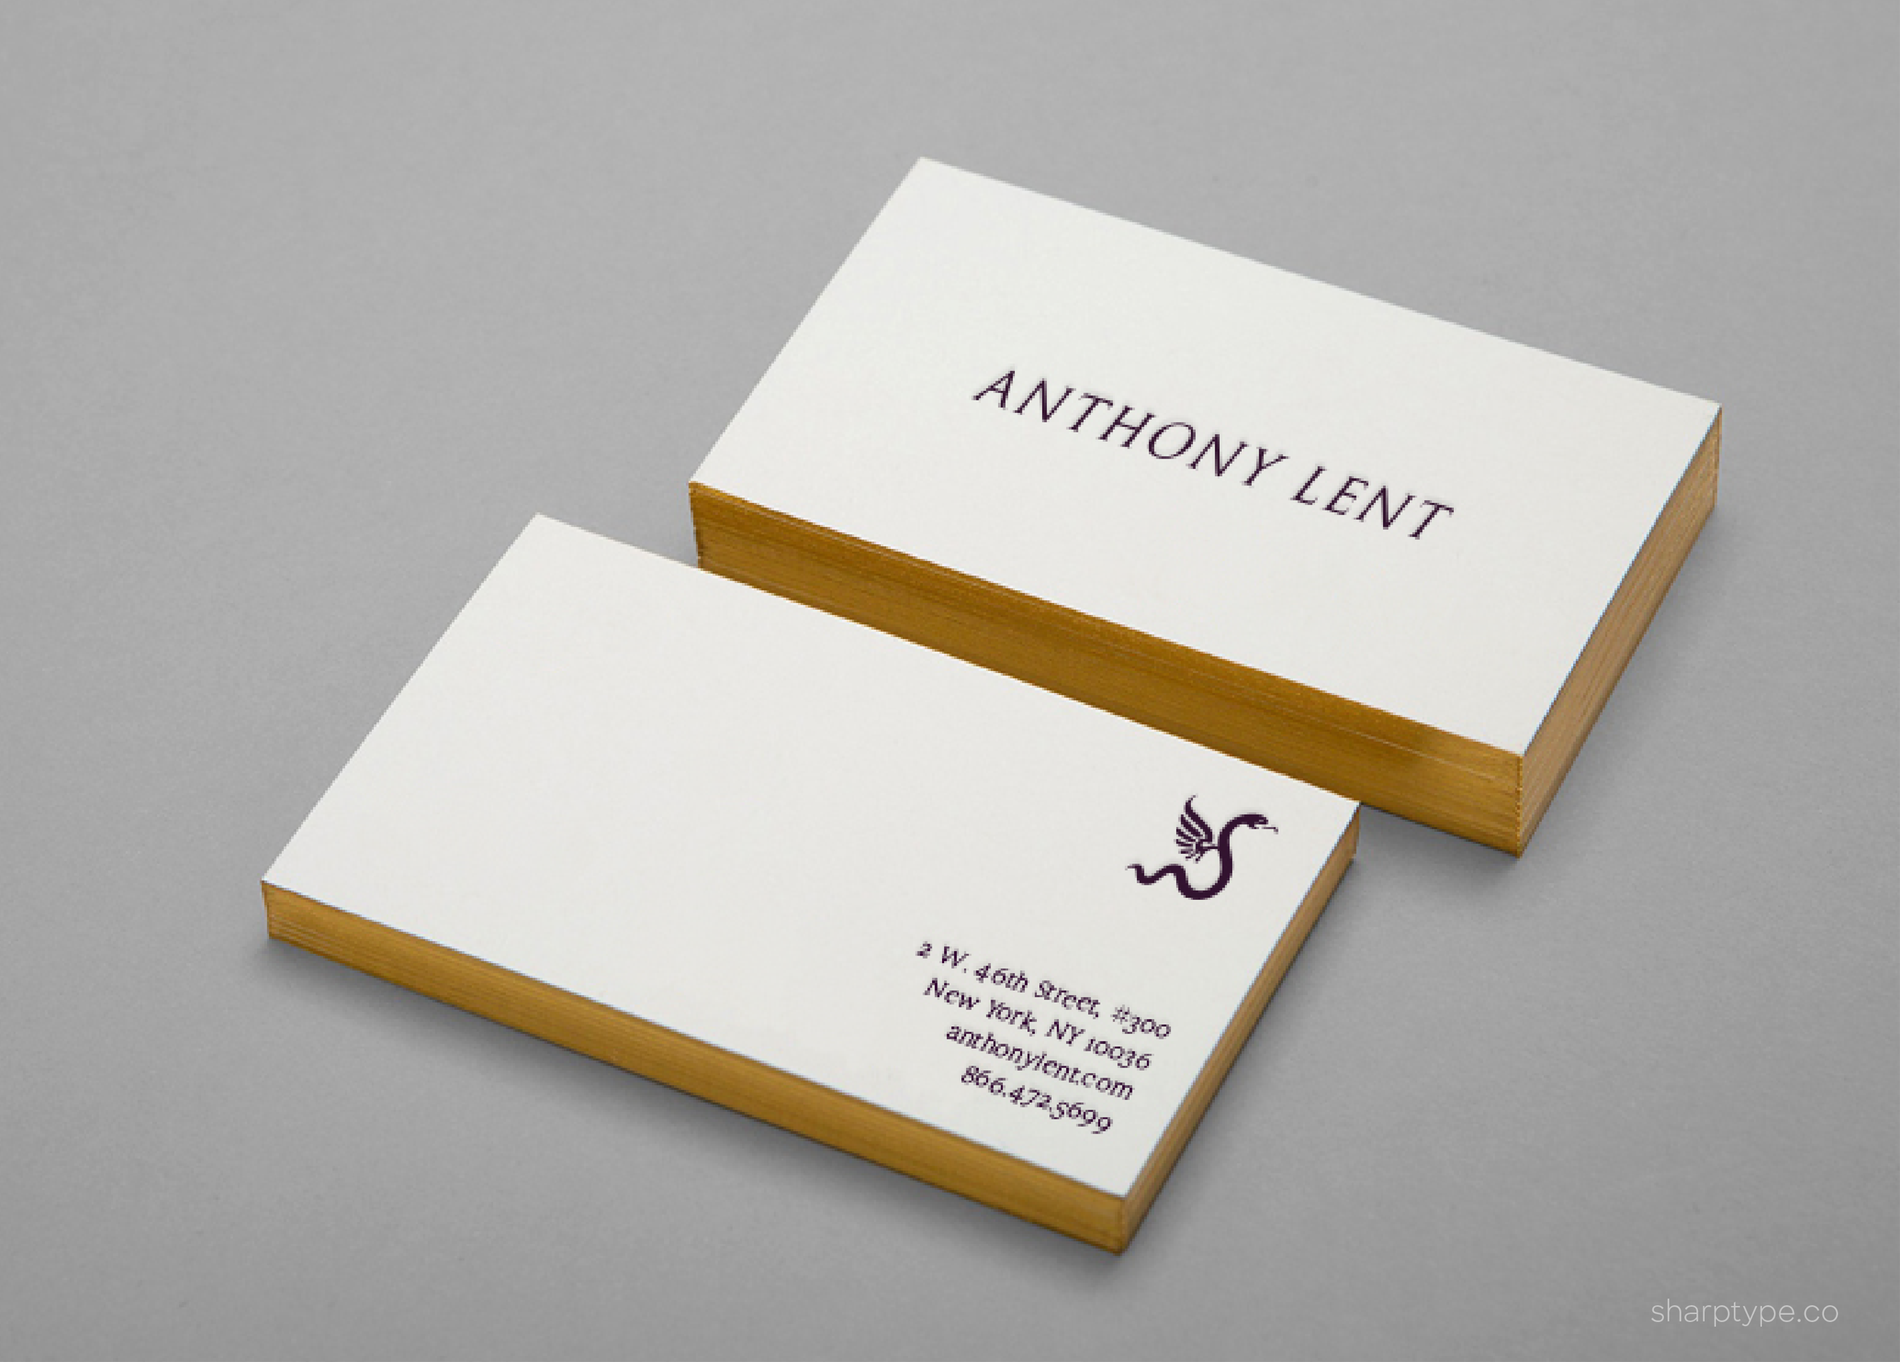 Anthony Lent Stationery Business Card